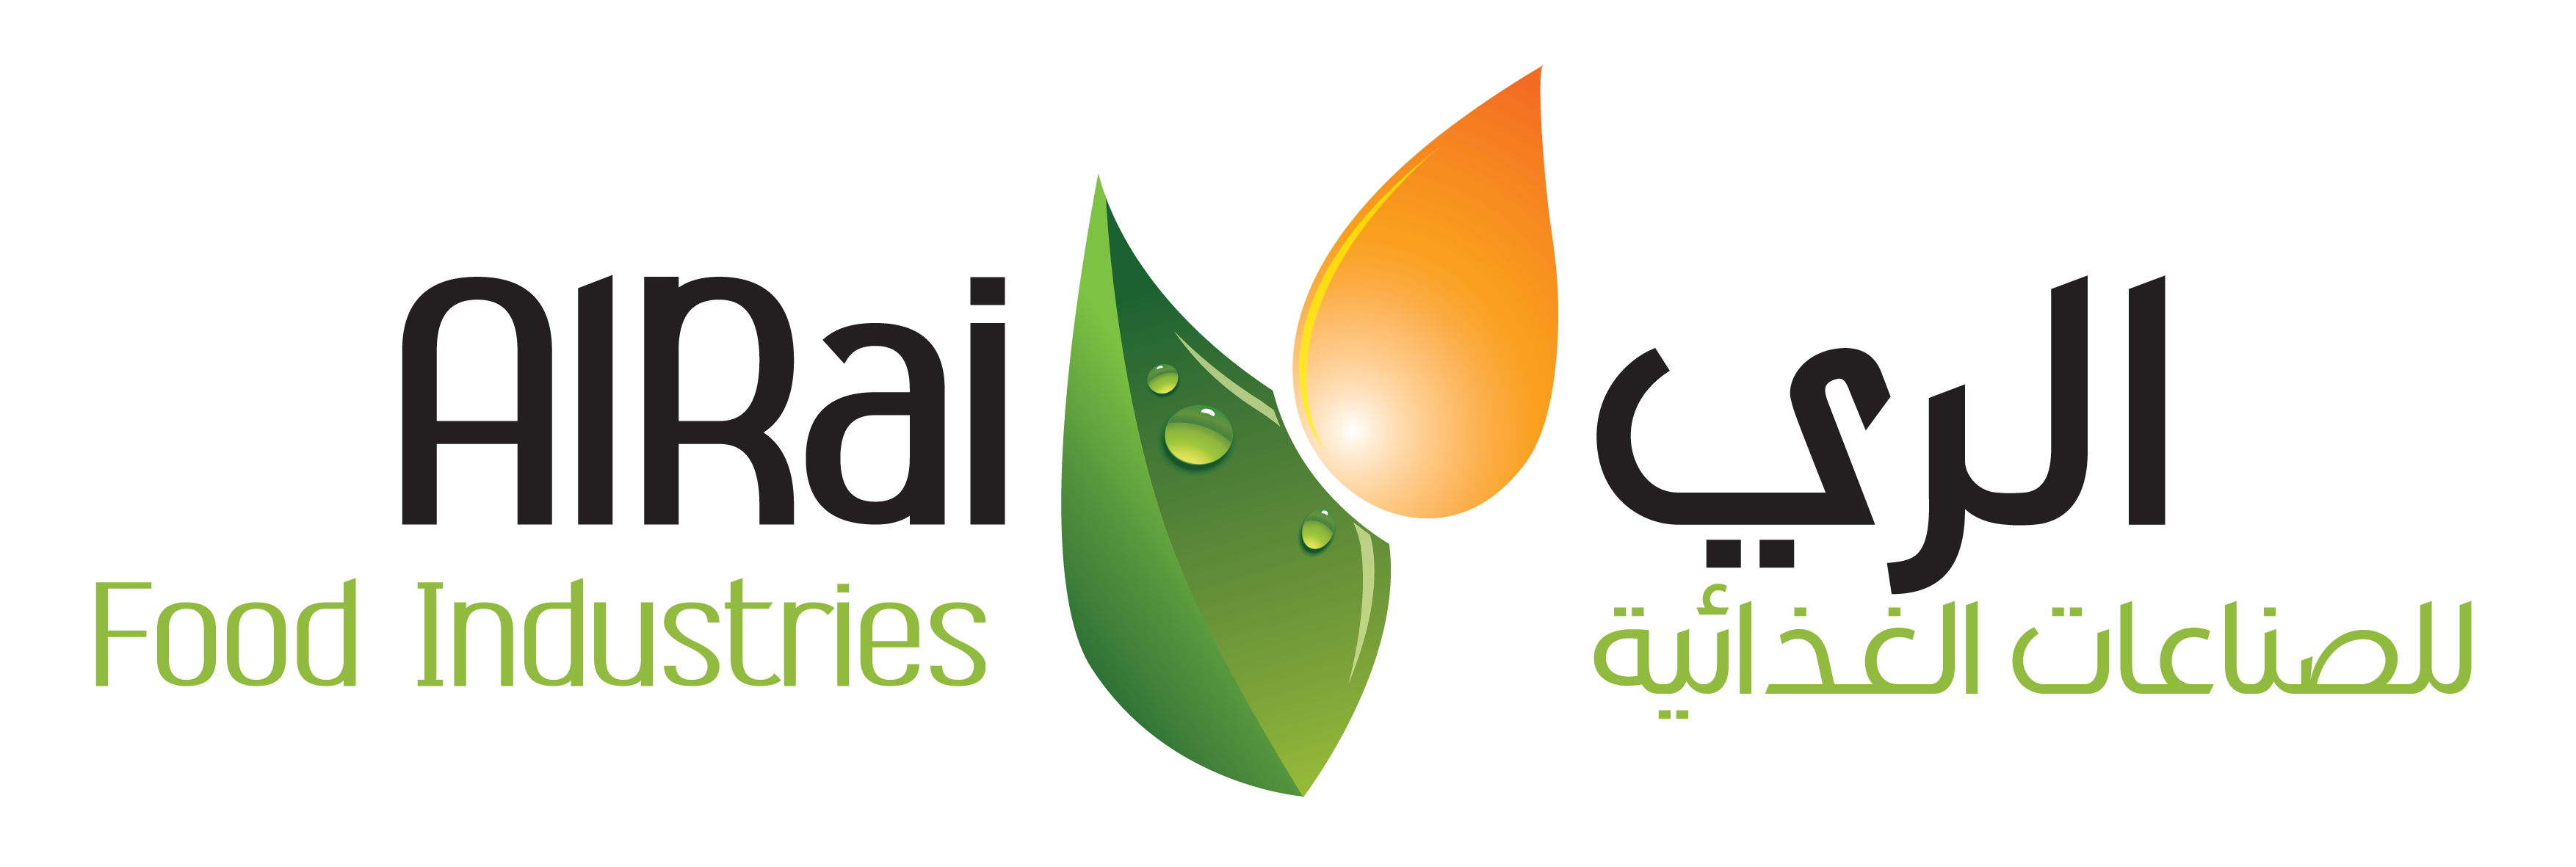 Al Rai Food Industries